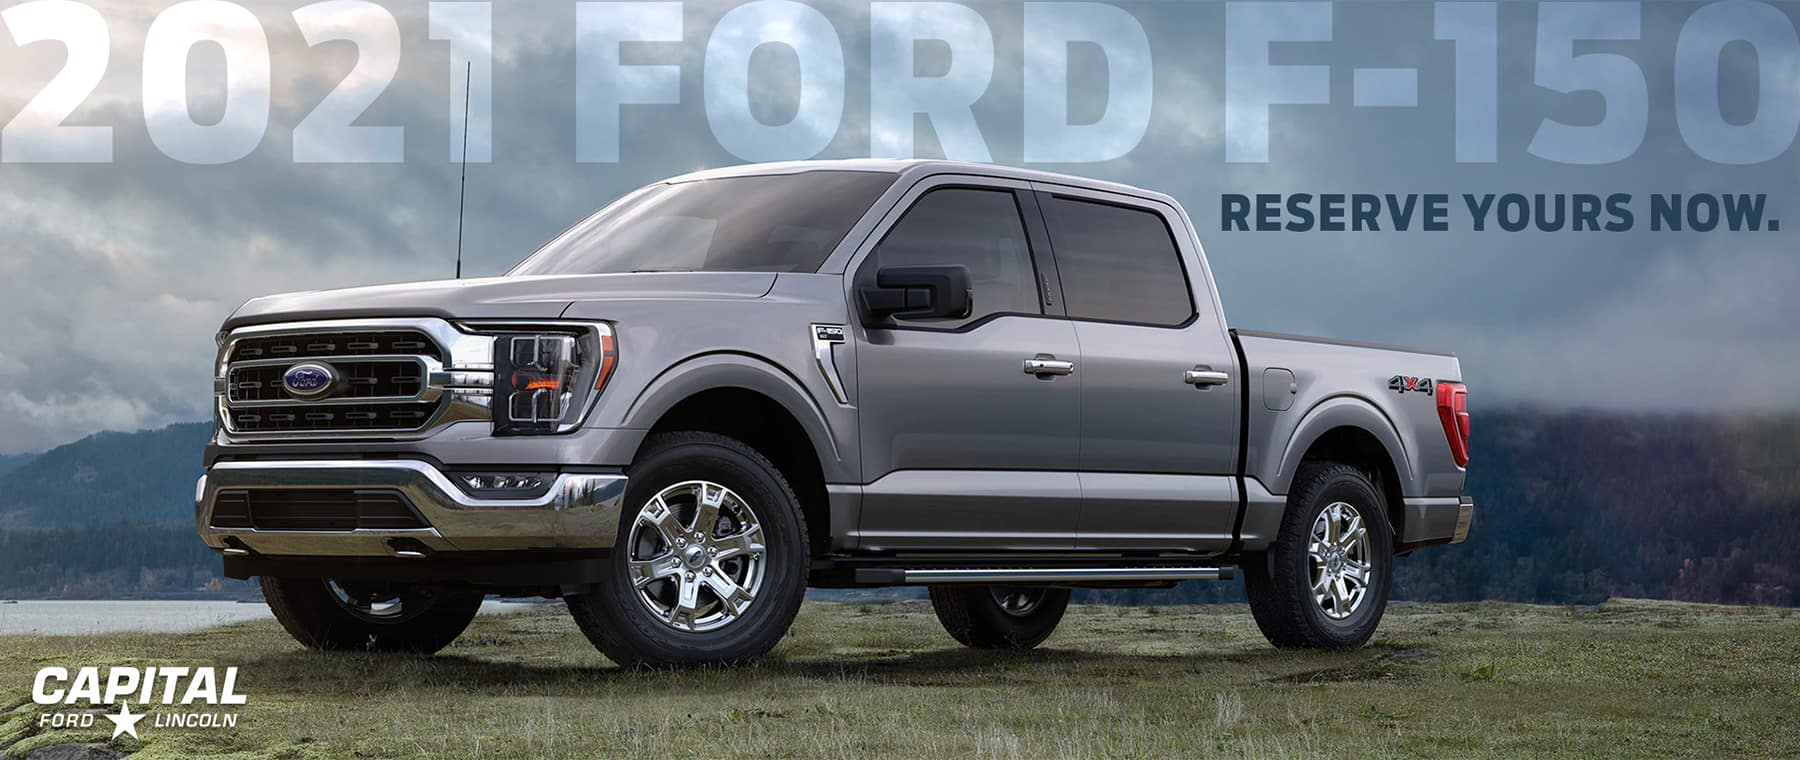 2021 Ford F150 Reserve Yours Now